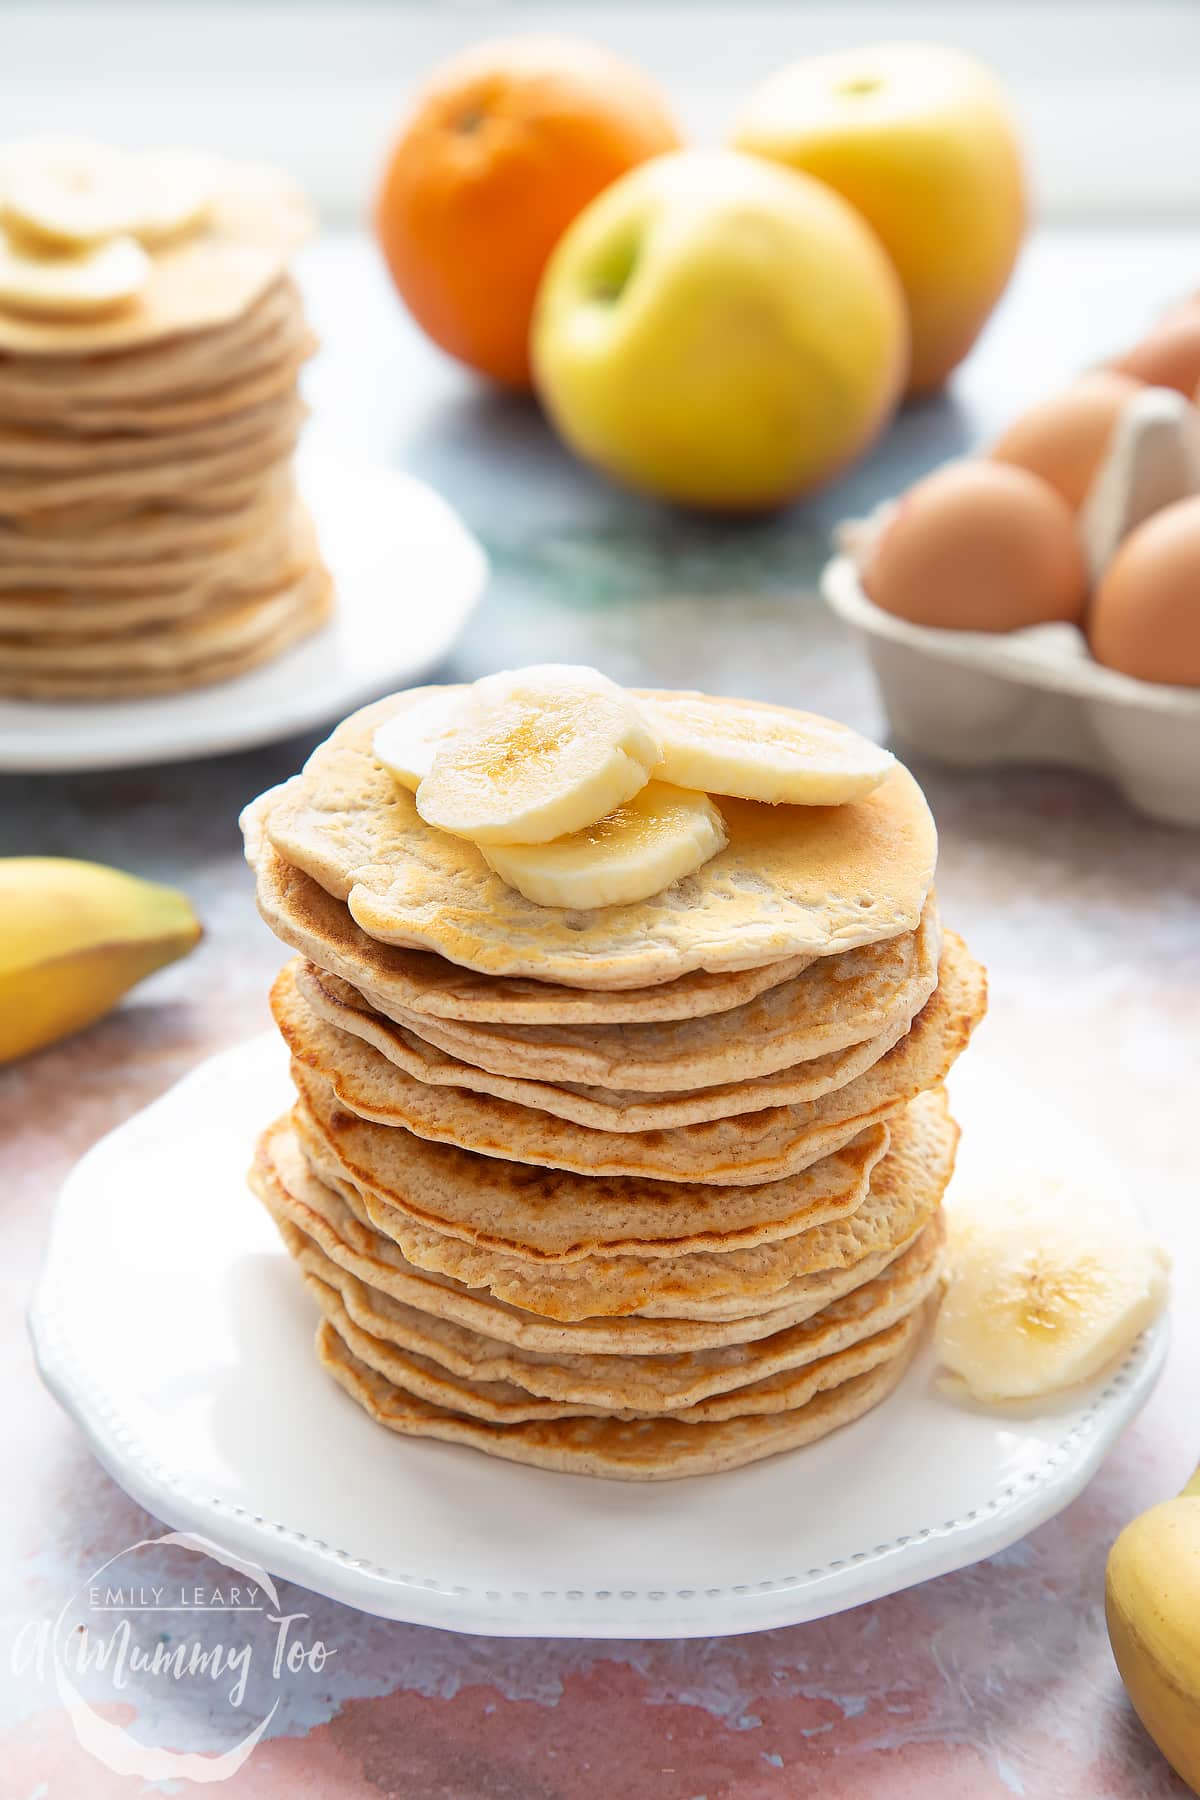 Overhead shot of a pancake stack on a white plate topped with banana with the A Mummy Too logo in the corner